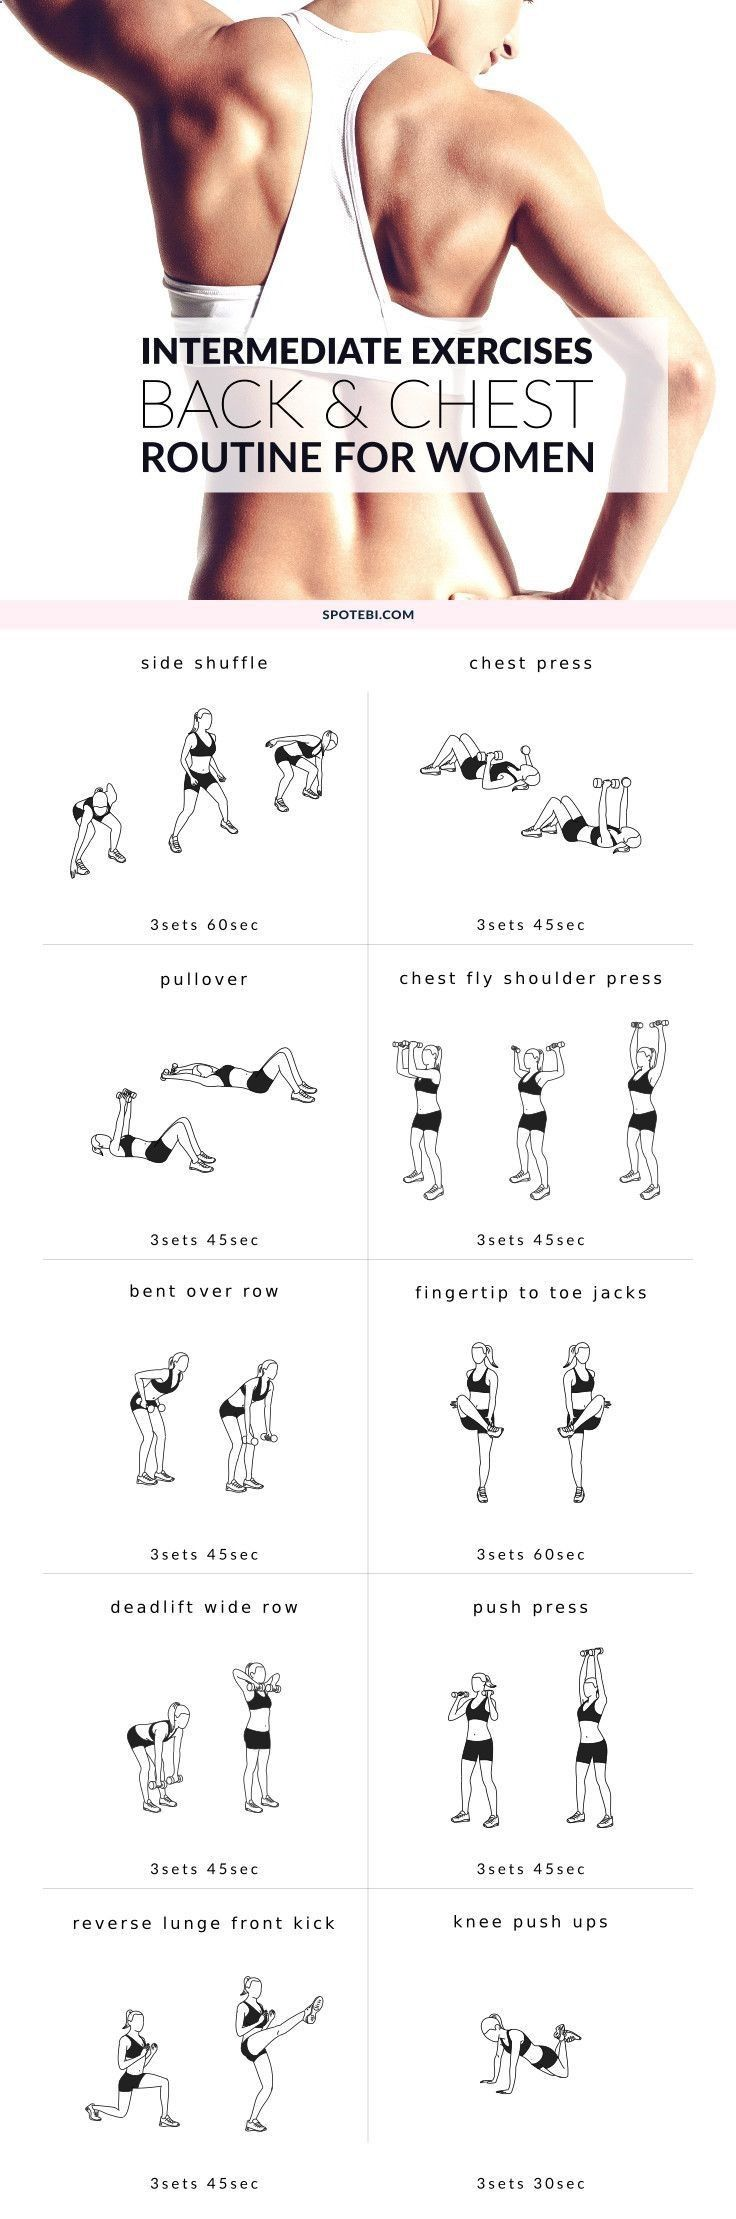 Improve your posture and increase your strength at home with this upper body intermediate workout. A back and chest routine for women that will help you tone your muscles and perk up your breasts!